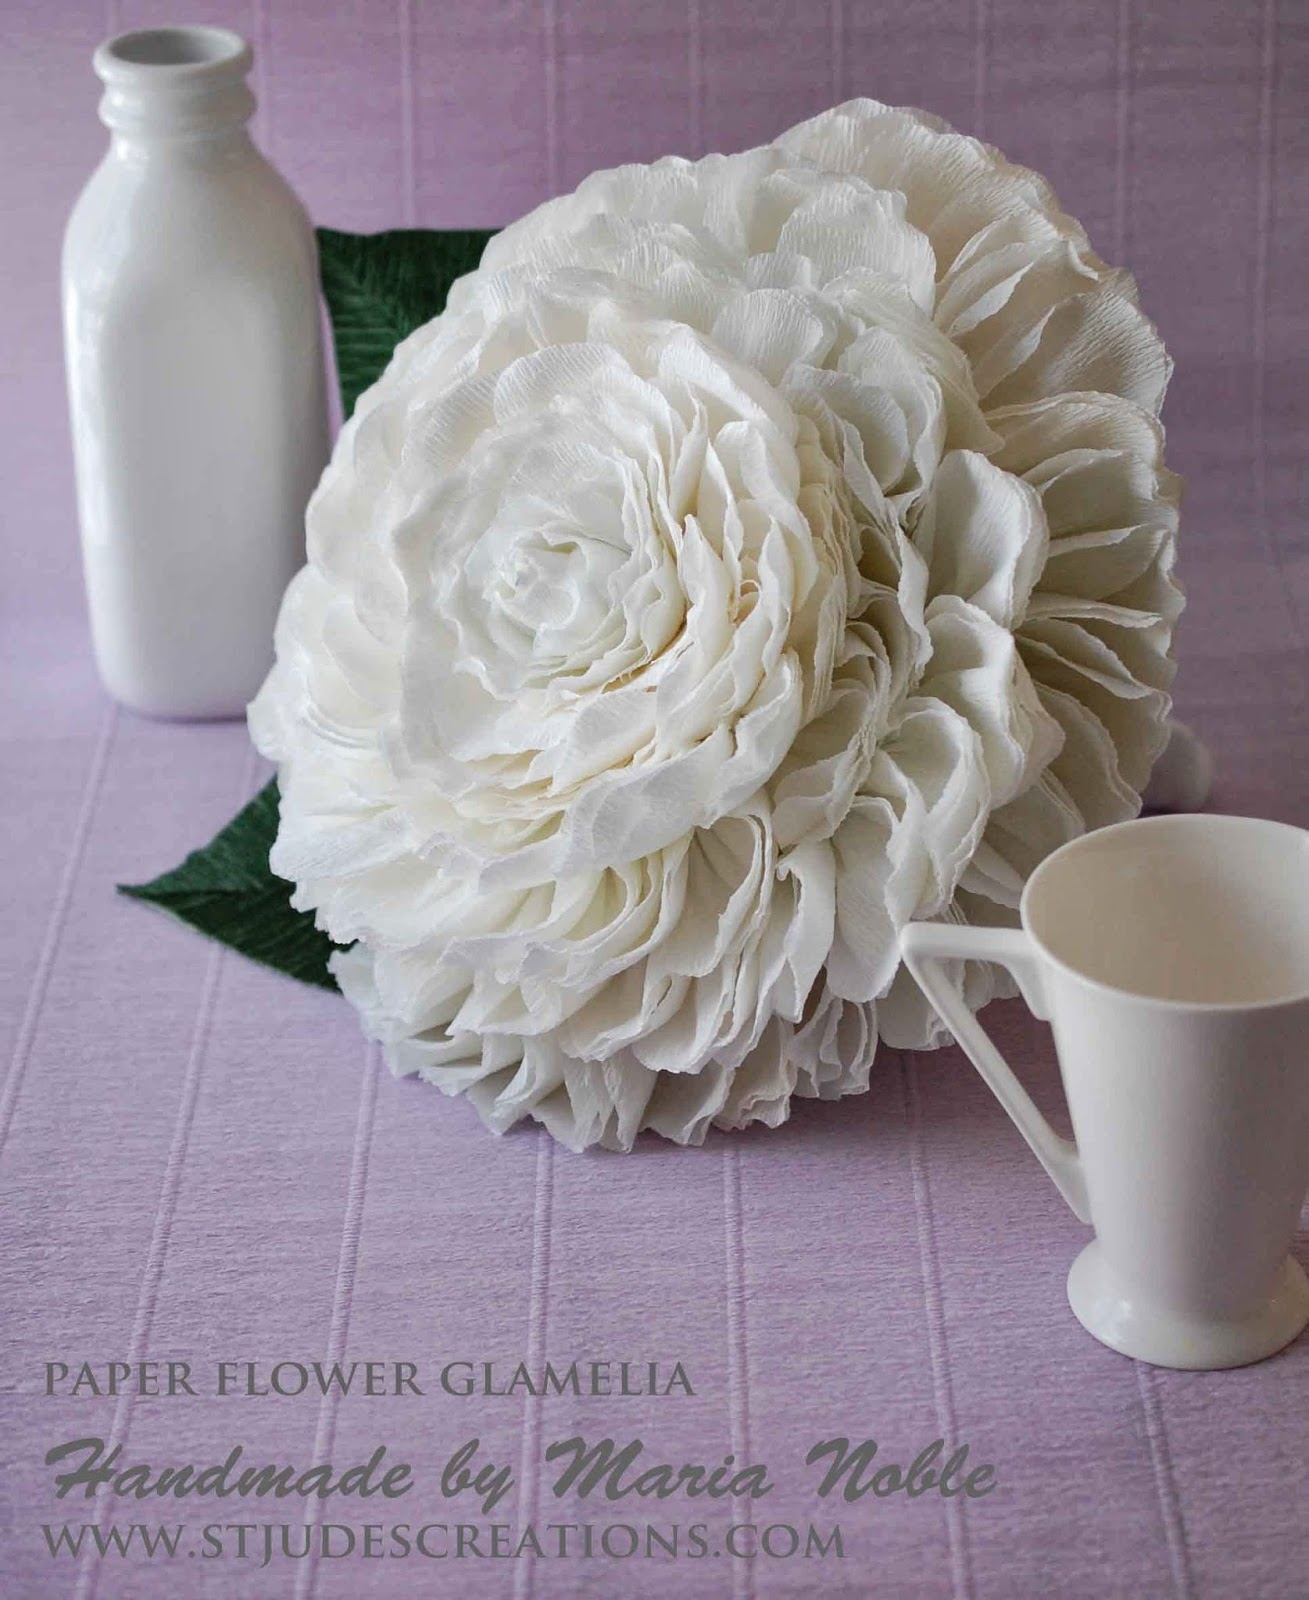 Paper flowers do feel free to pin pictures to your boards or facebook izmirmasajfo